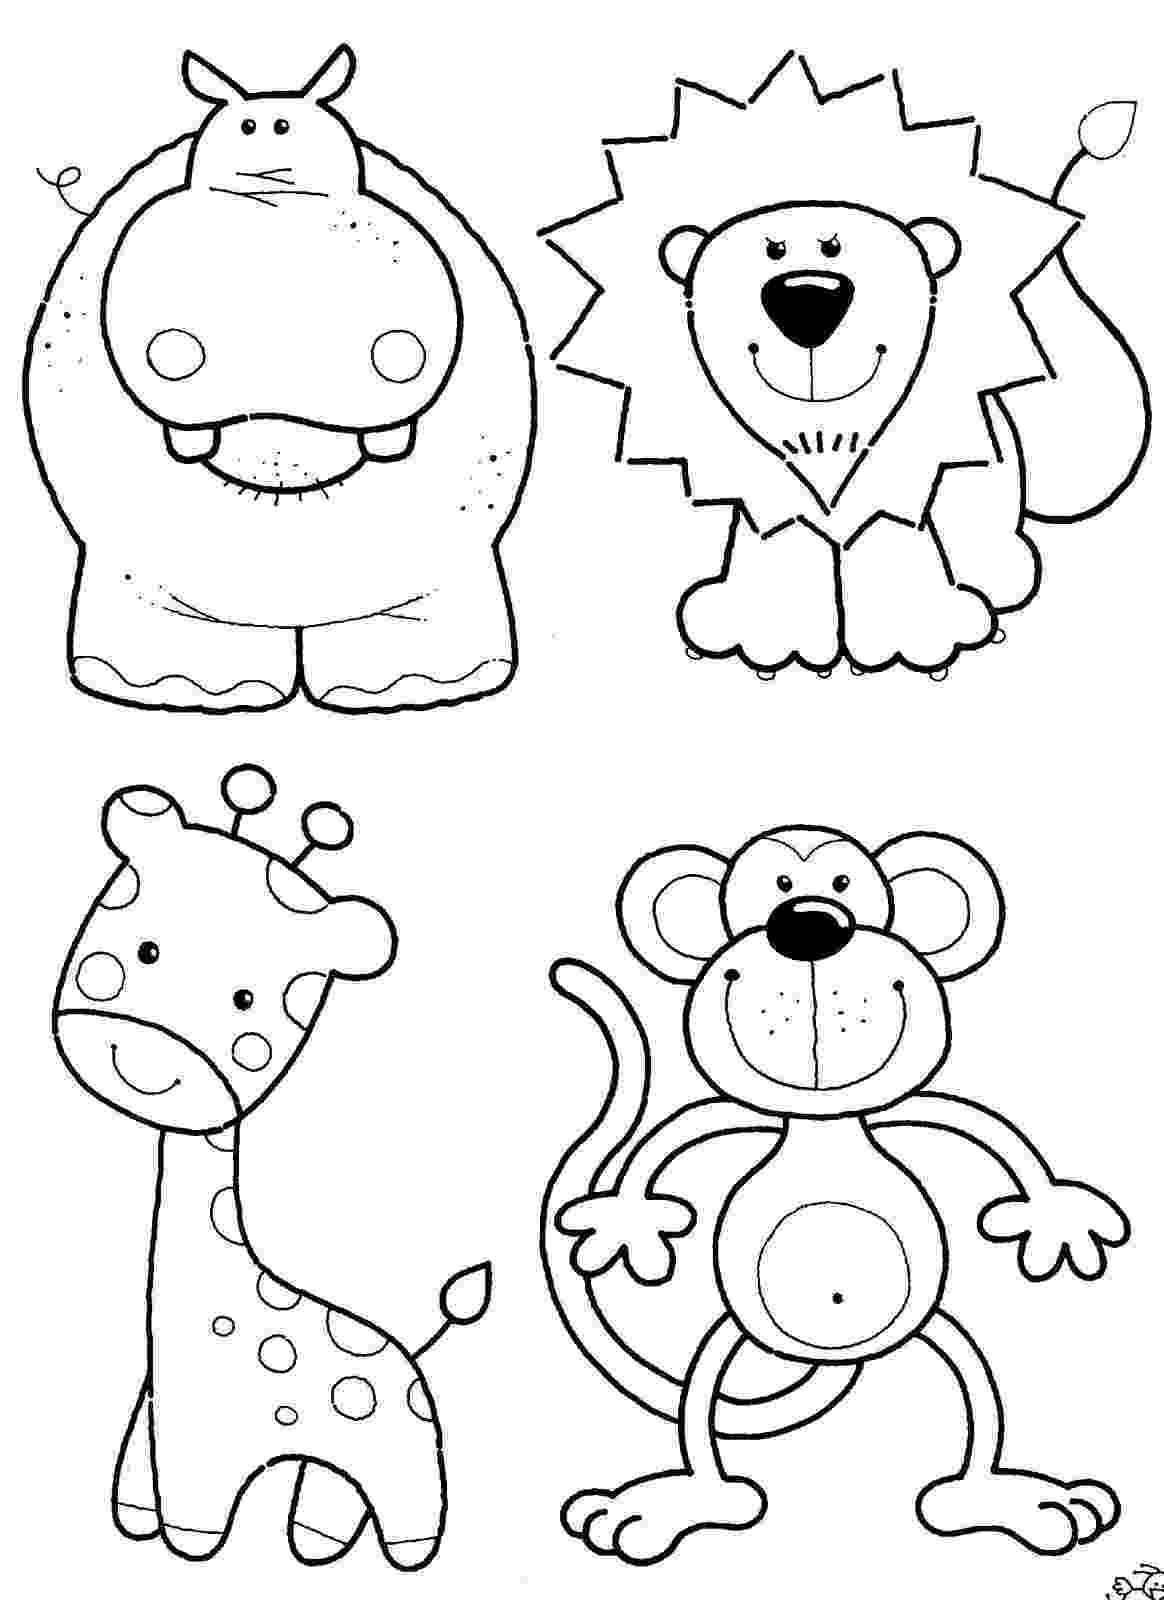 zoo animals colouring pages free free printable zoo coloring pages for kids animals colouring pages zoo free